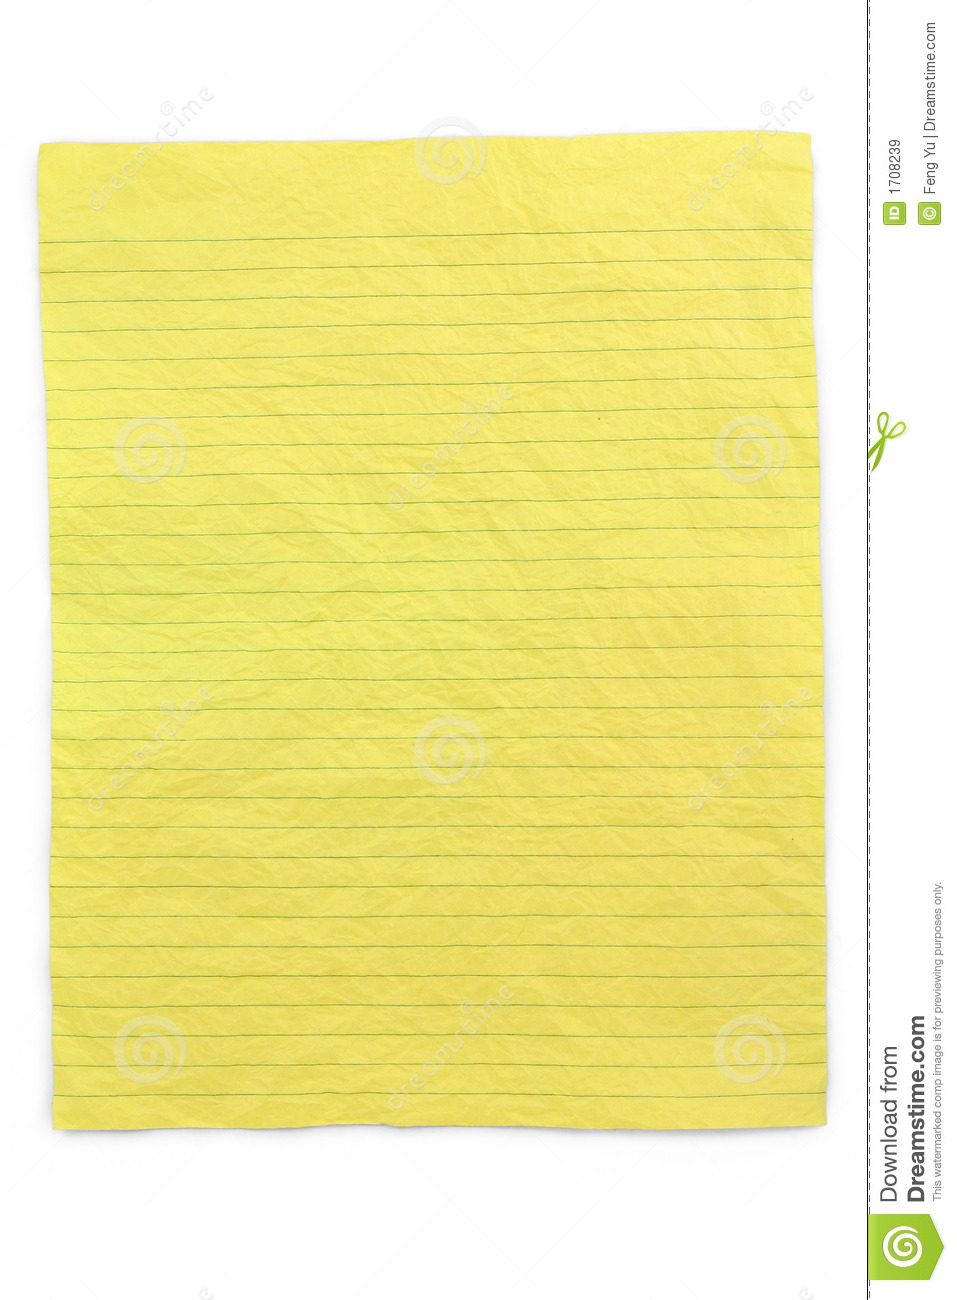 Crumpled Yellow Lined Paper Royalty Free Stock Images ...